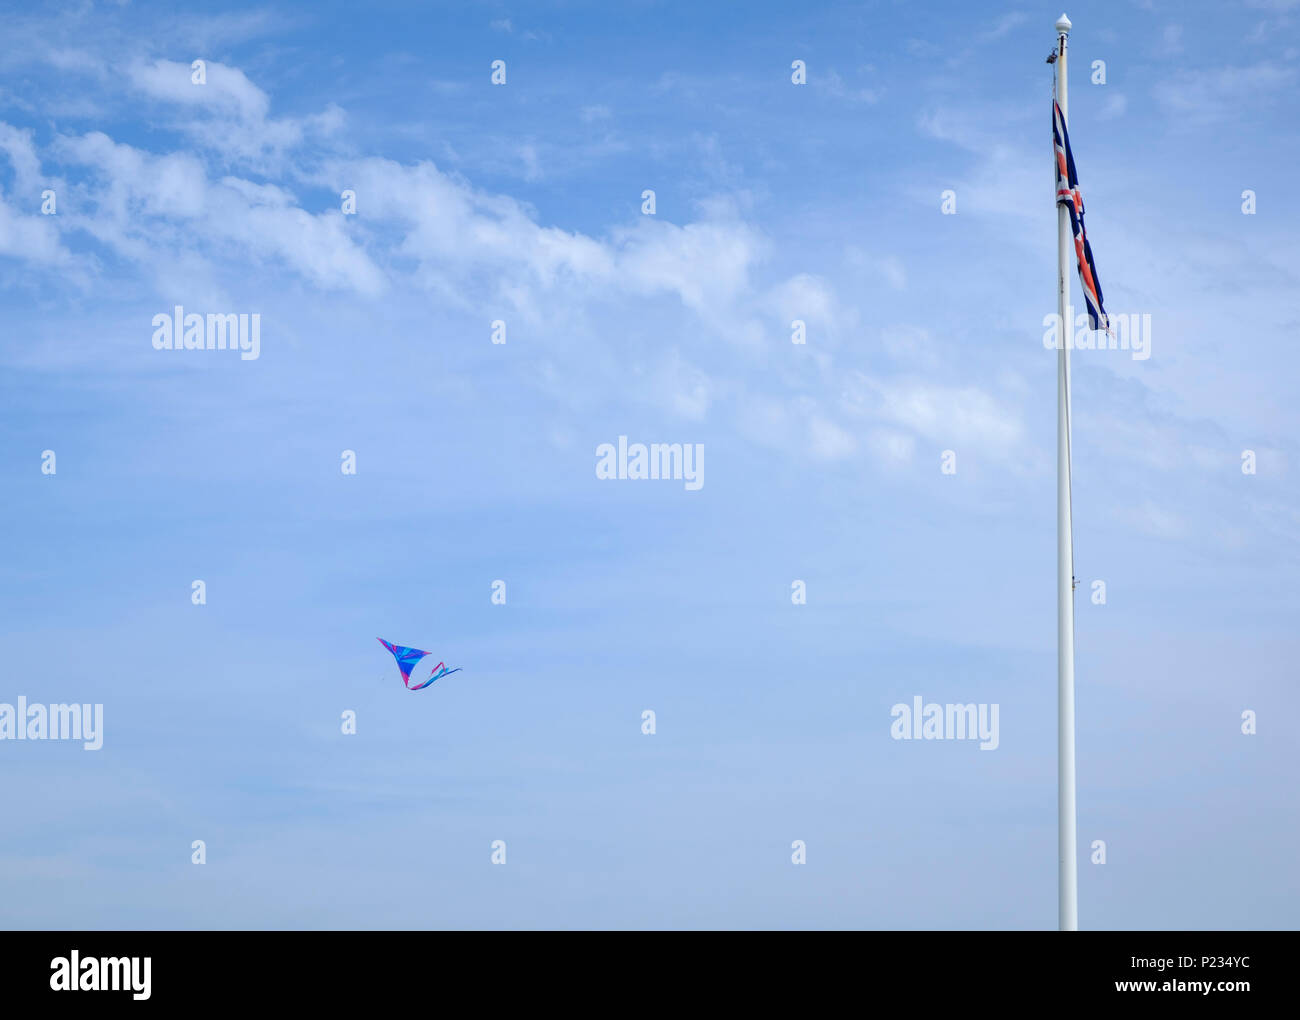 Union Jack Flag on flagpole against a blue sky with a kite being flown nearby - Stock Image